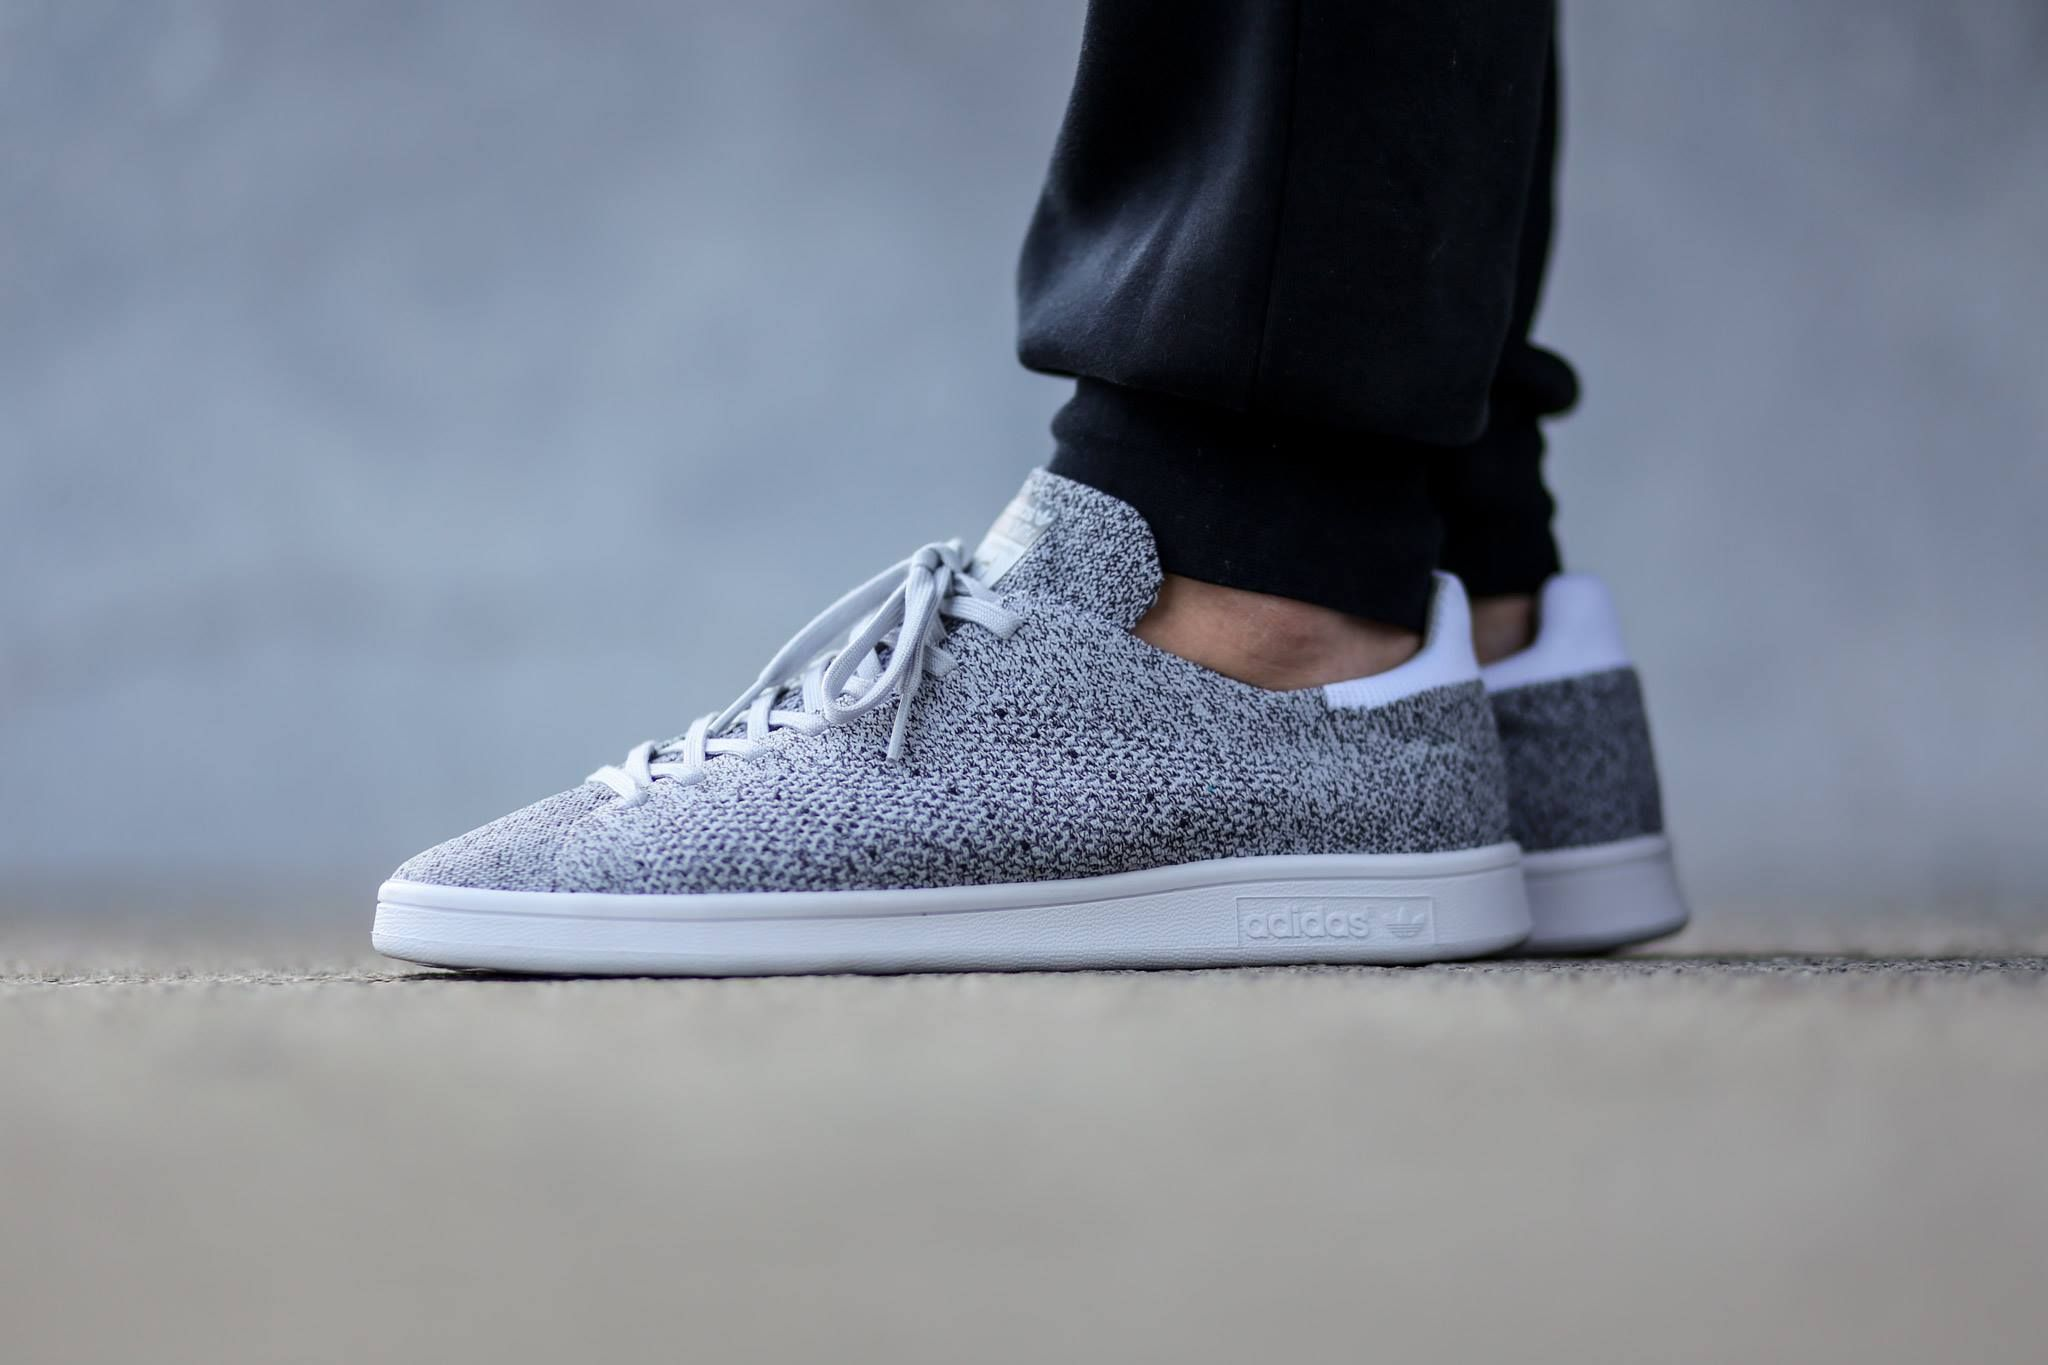 wholesale dealer afd26 7f493 Look at this latest Spring Summer 2K14 Primeknit version of the timeless  classic Stan Smith from Adidas. The pair boasts a lush primeknit upper  declined in